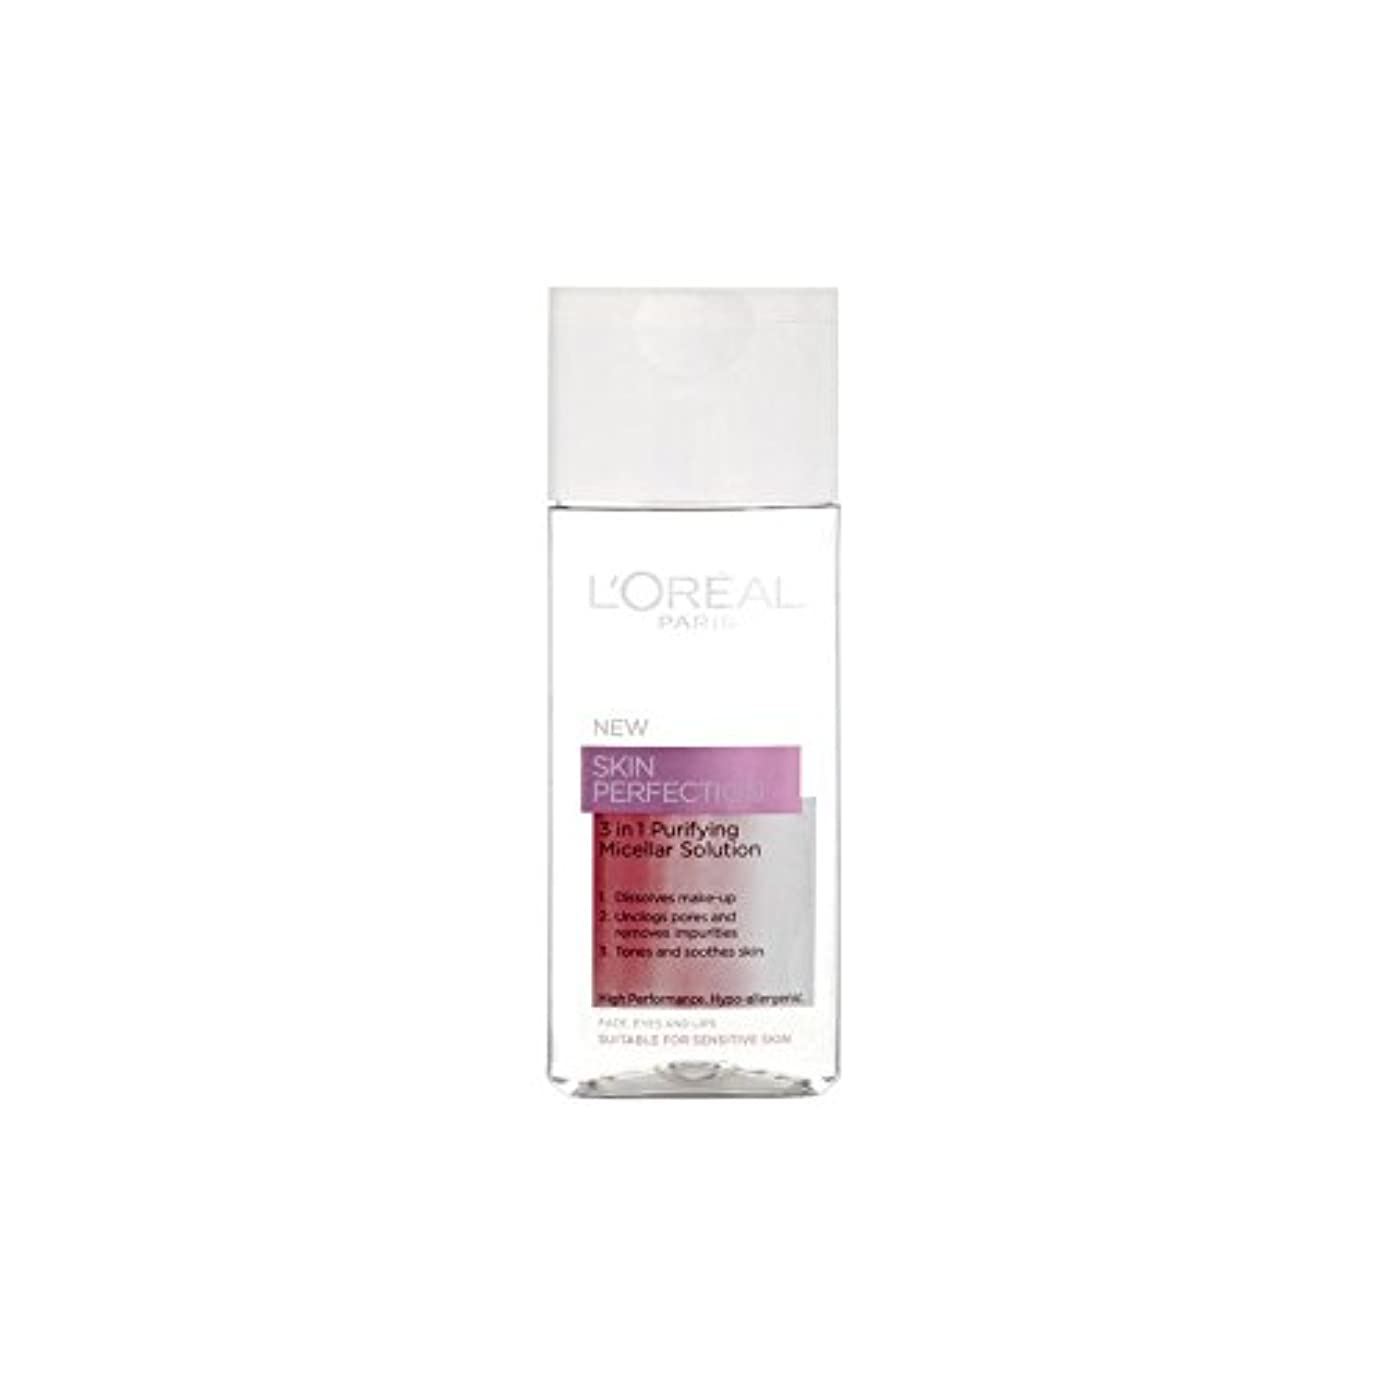 真珠のような病んでいる体細胞L'Oreal Paris Dermo Expertise Skin Perfection 3 In 1 Purifying Micellar Solution (200ml) (Pack of 6) - 1つの精製ミセル...